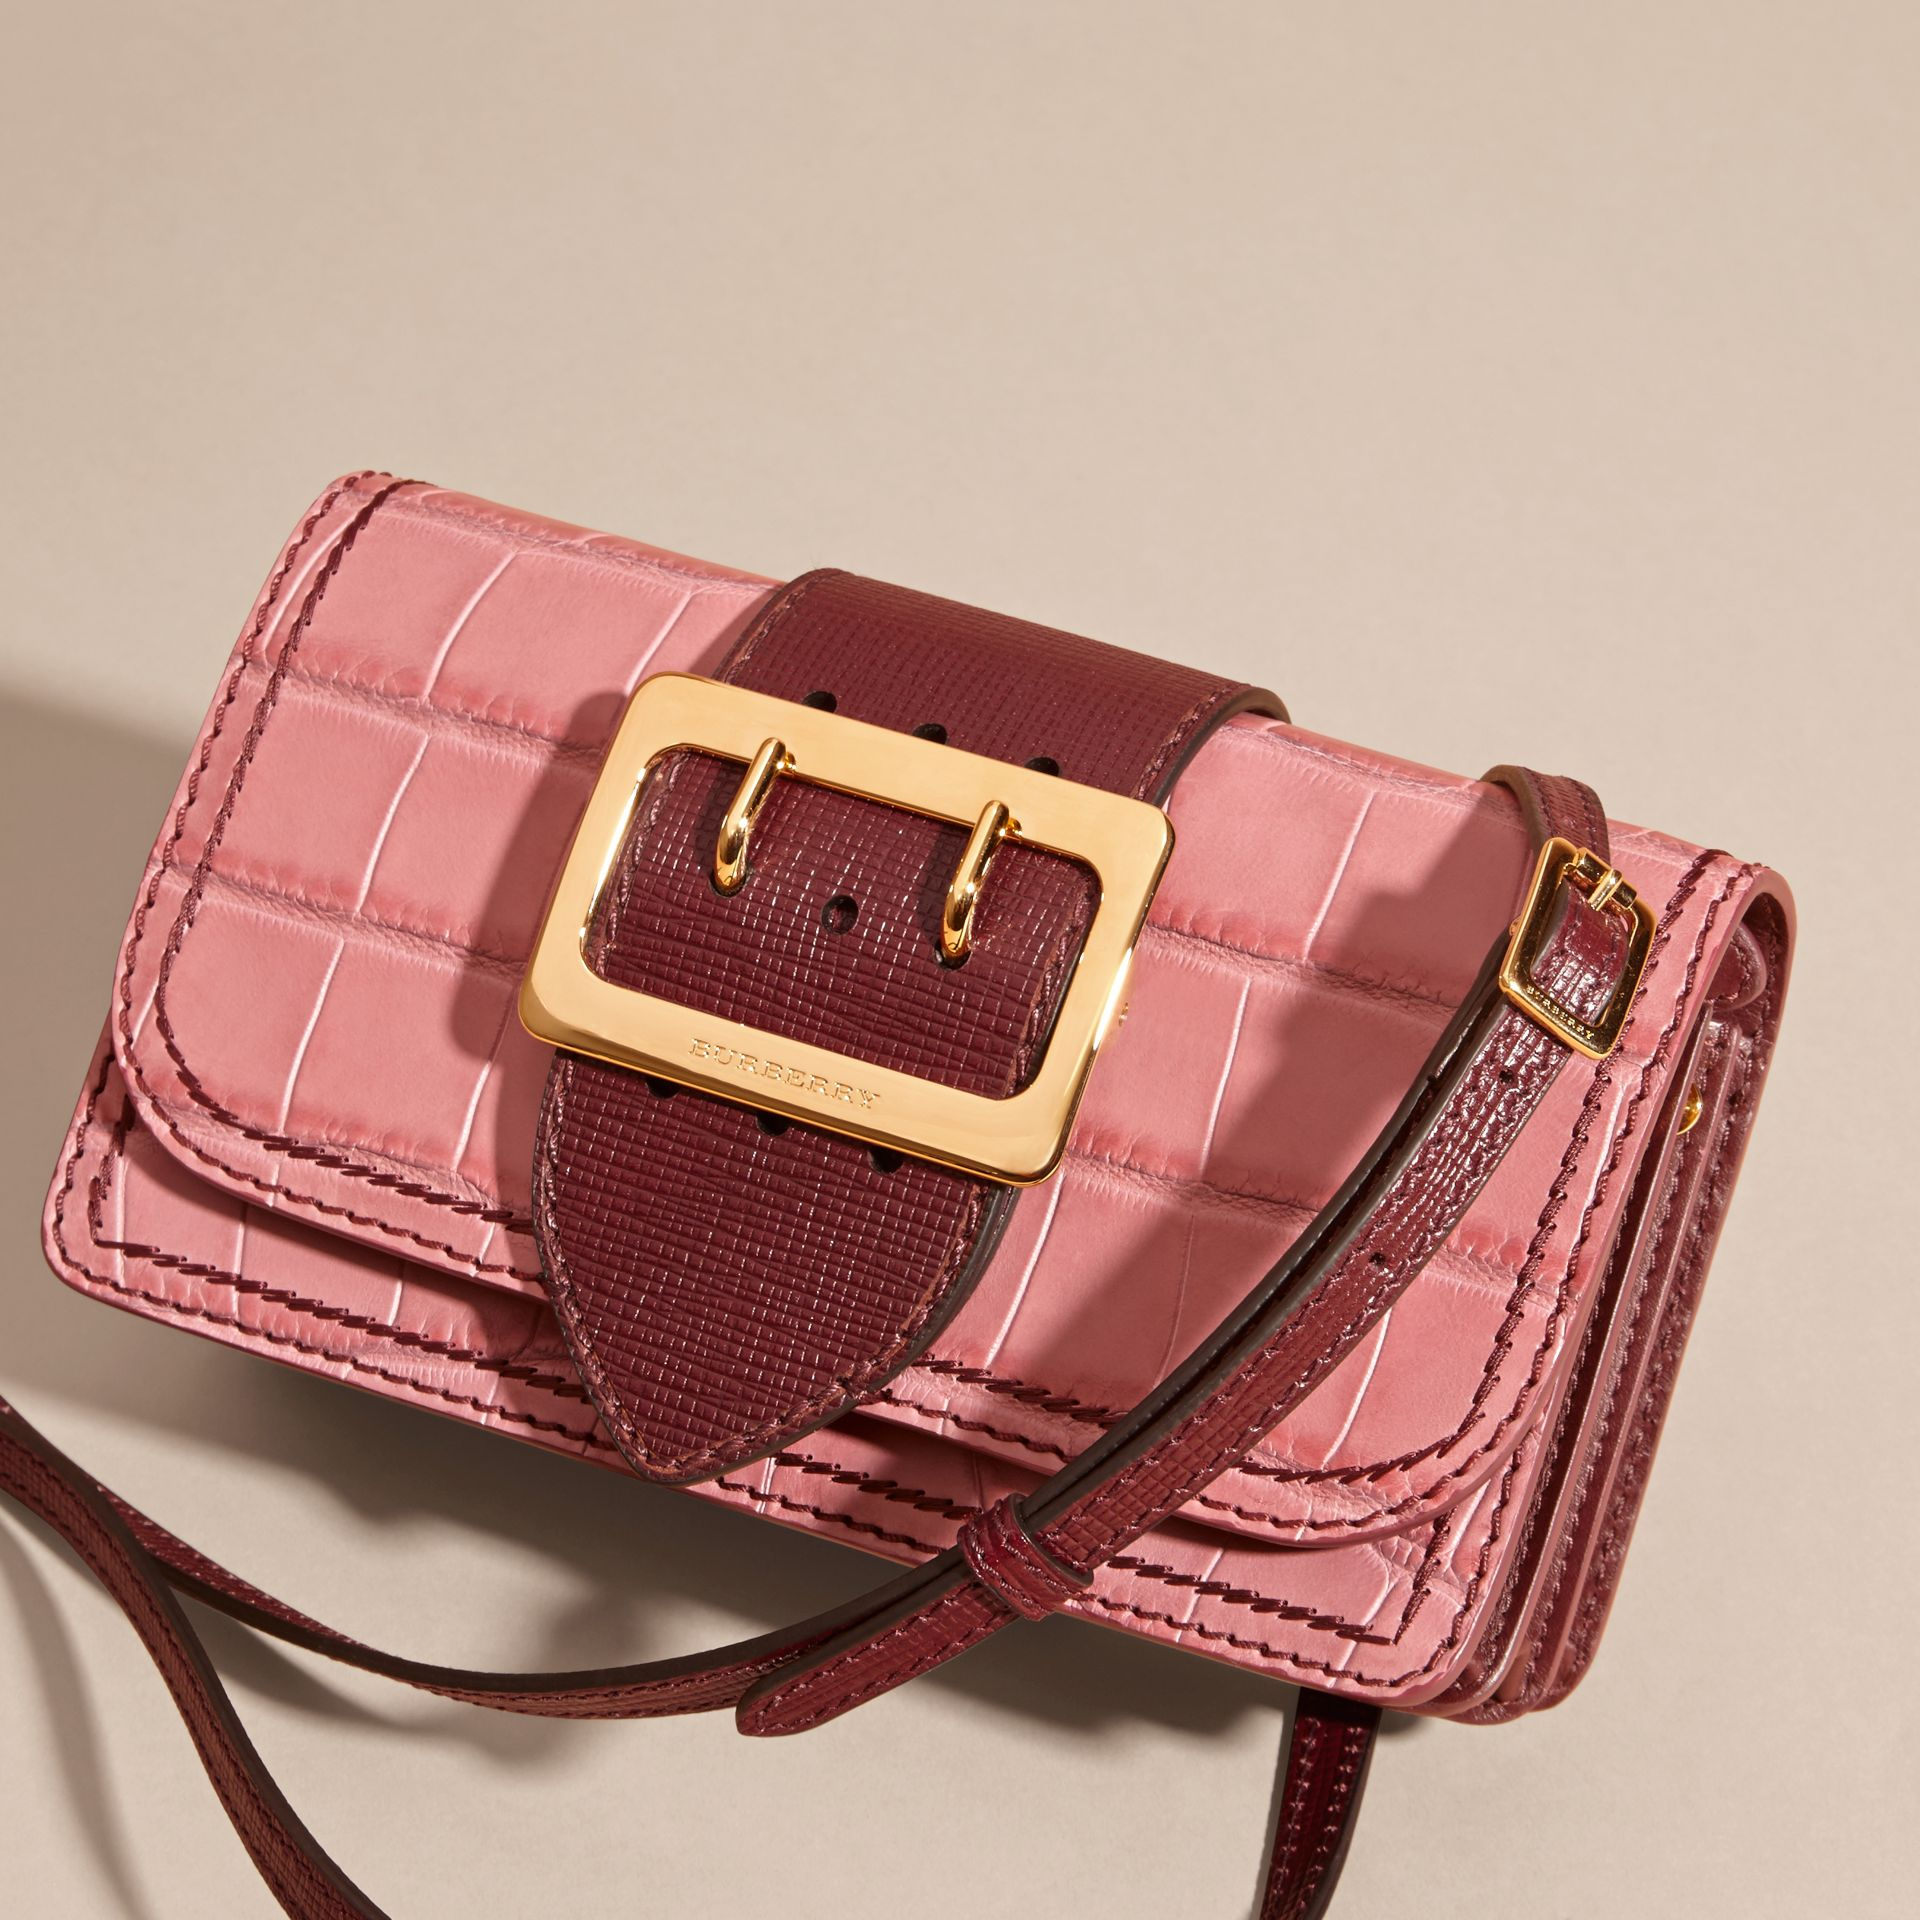 Dusky pink/ burgundy The Small Buckle Bag in Alligator and Leather Dusky Pink/ Burgundy - gallery image 8